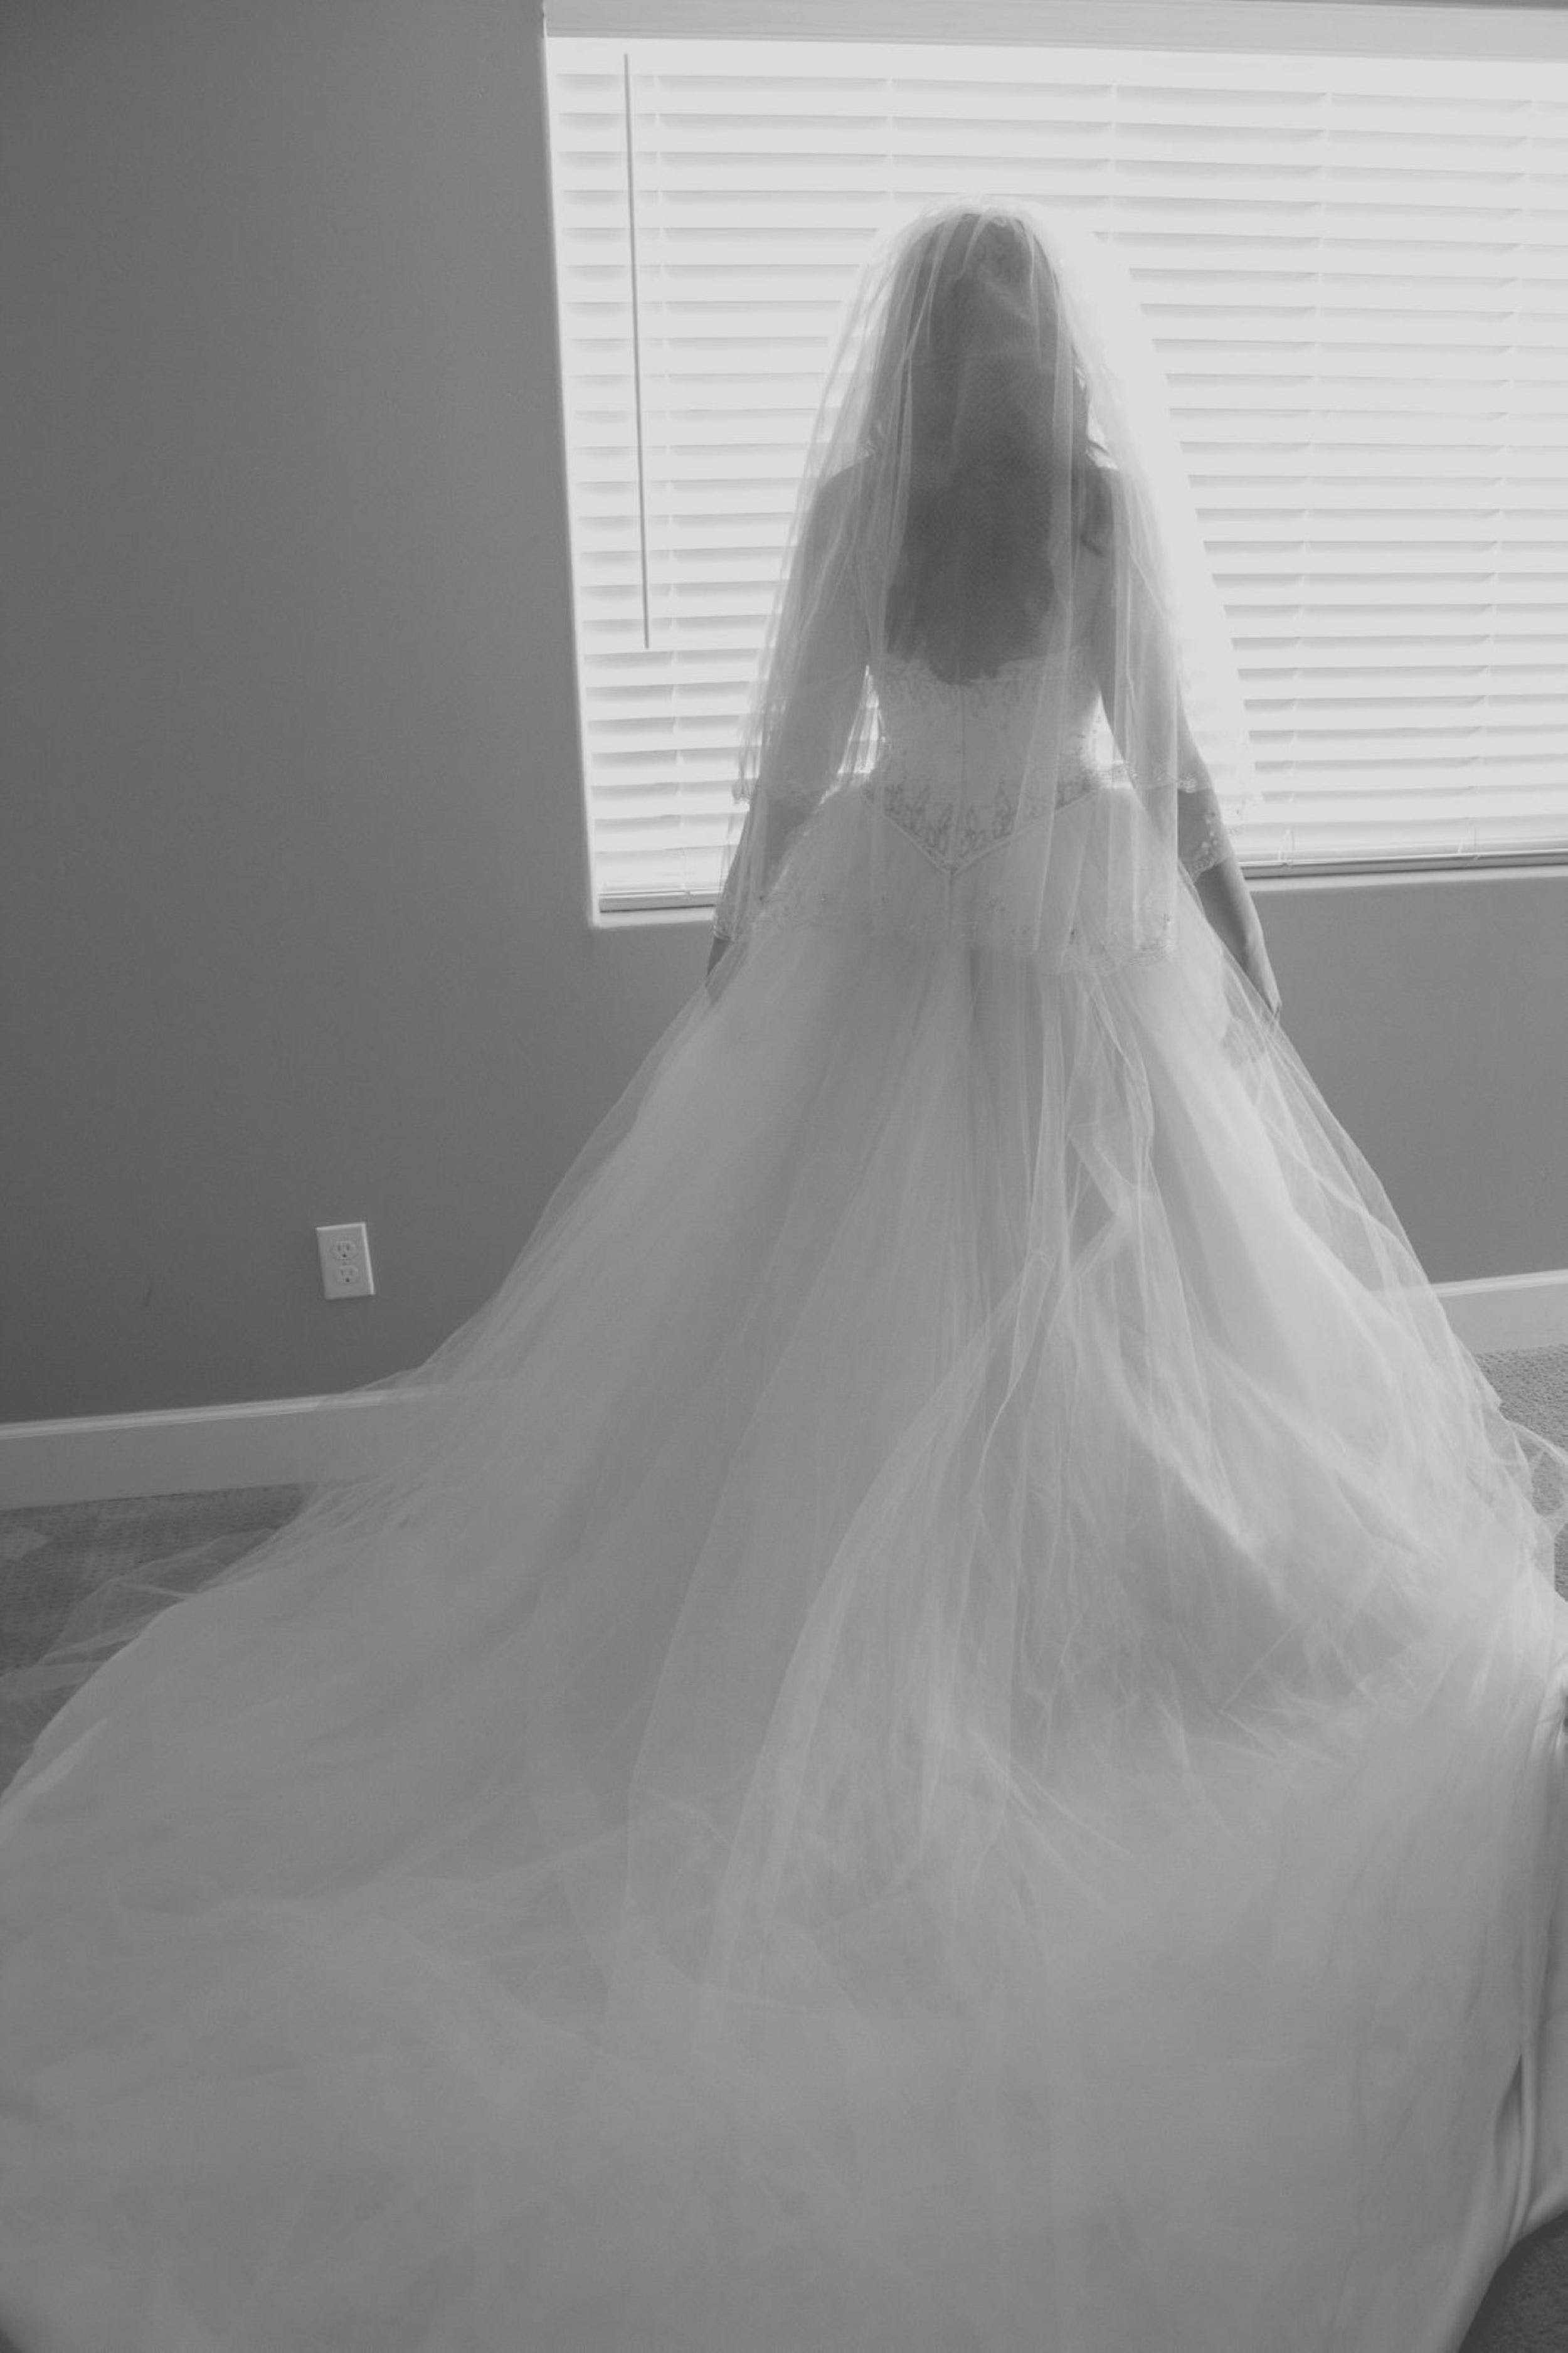 Free stock photo of #bride #beautiful #bridalgown #wedding, #gown